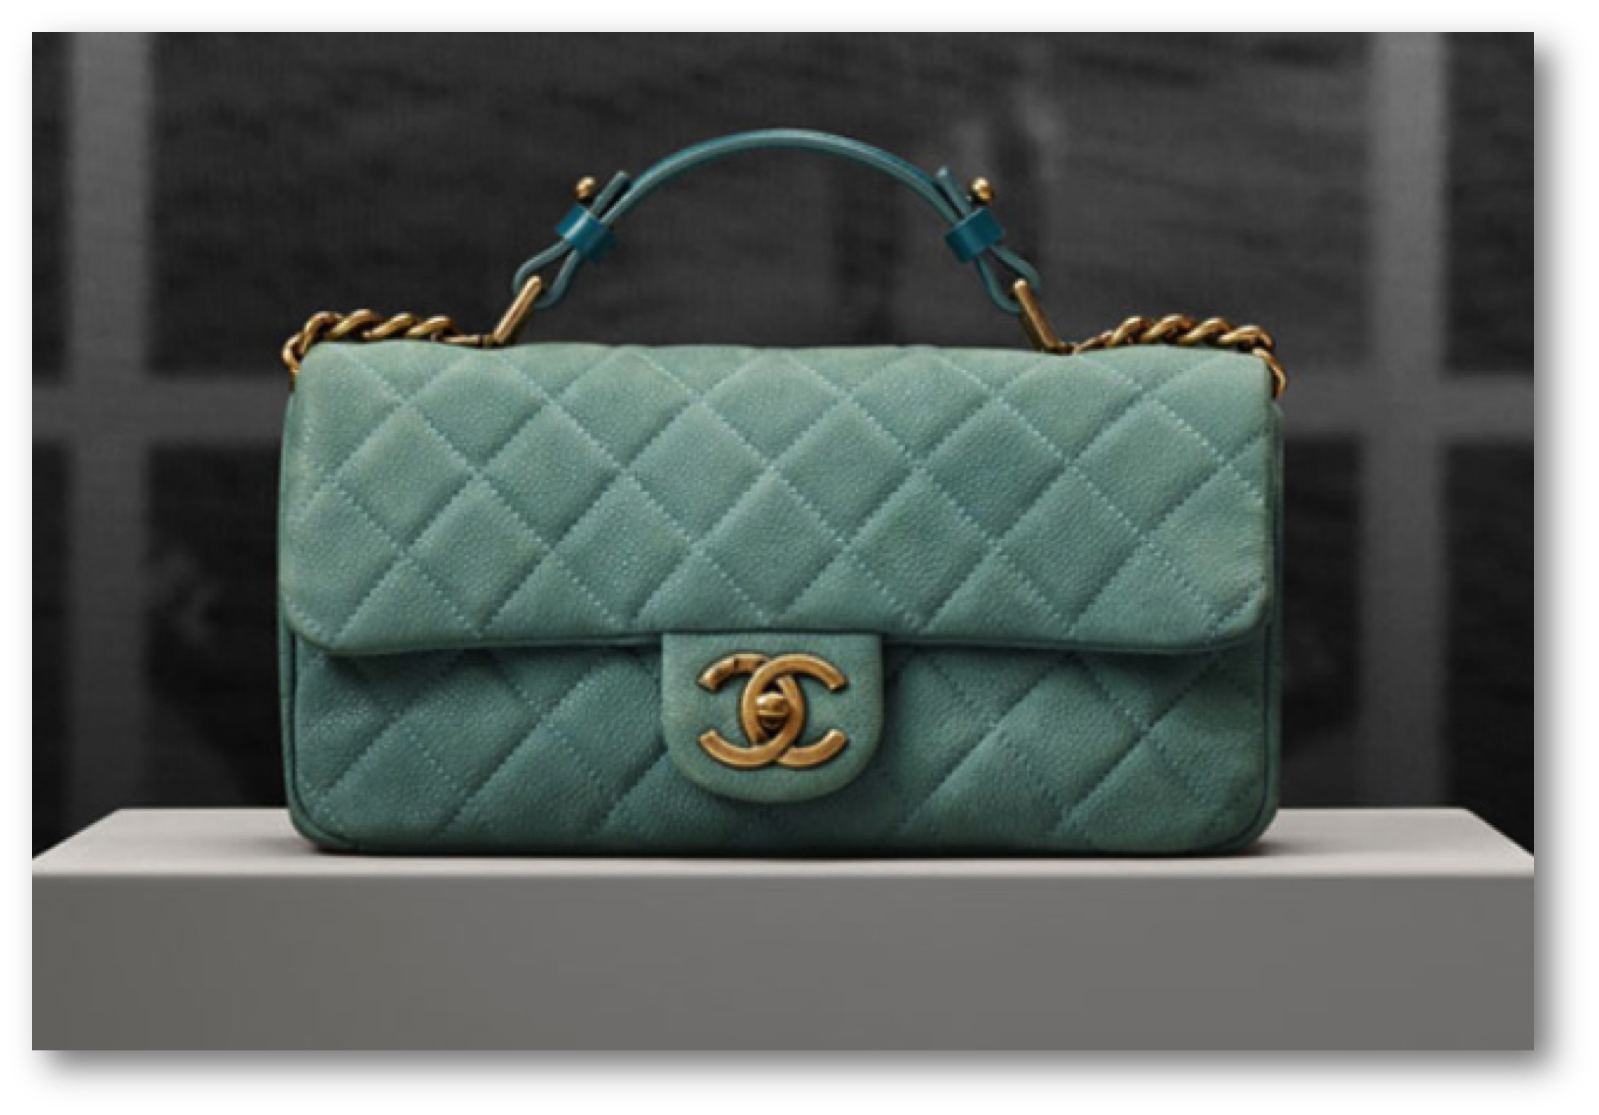 DESIGNER-handbag-trends-2013_chanel-bag-2013_CHANEL-BAG-TRENDS_THE-CHANEL-BAG-2014-COLLECTION_CHANEL-INSPIRED-TRENDS_CHEAP-CHANEL-BAGS_NEW-CHANEL-BAG_COLOURFUL-CHANEL-BAG-ACCESSORIES